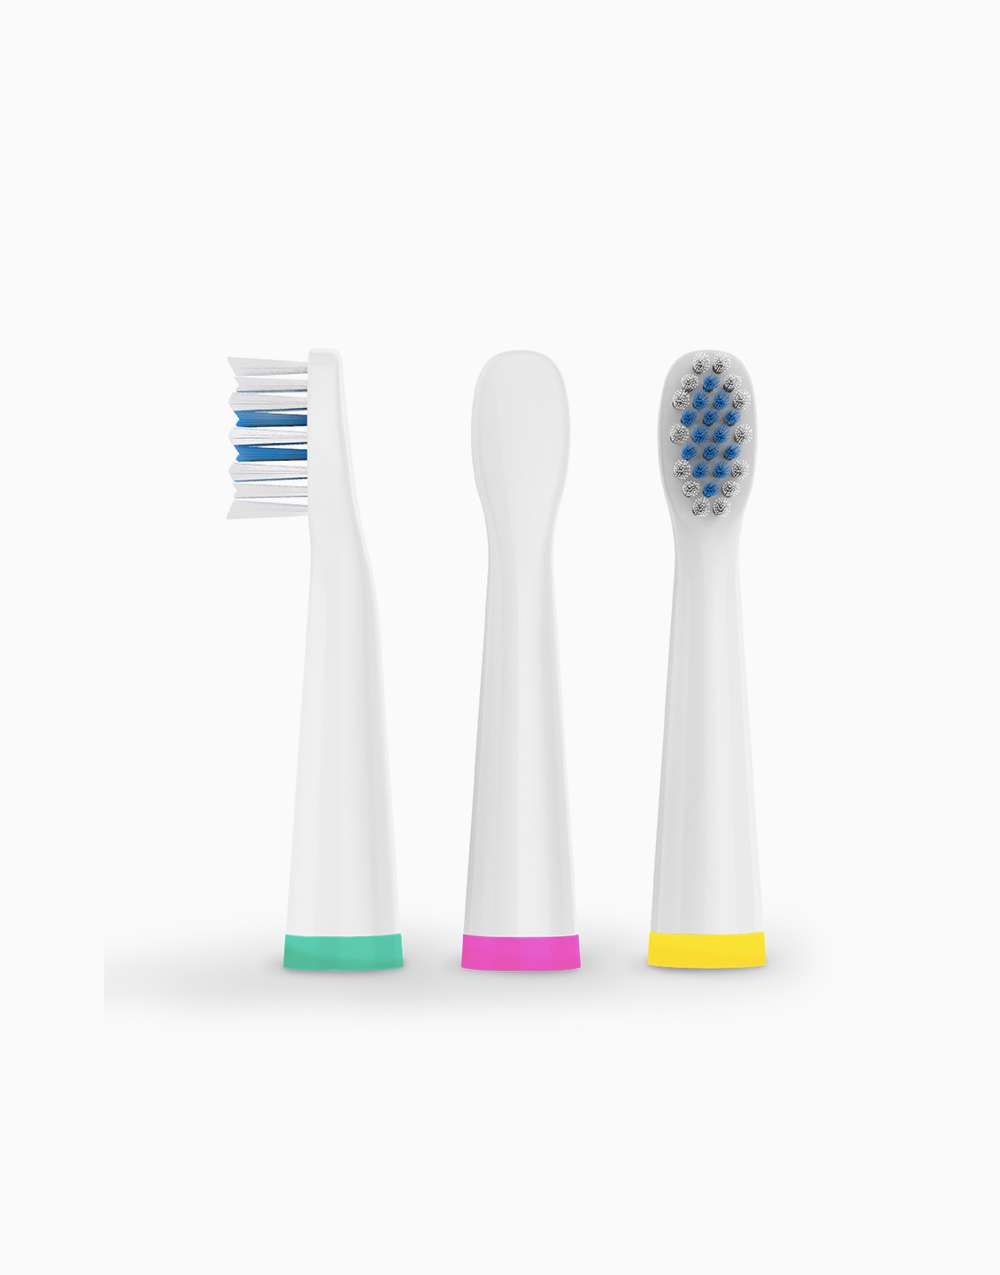 Toothbrush Replacement Heads by HiMirror